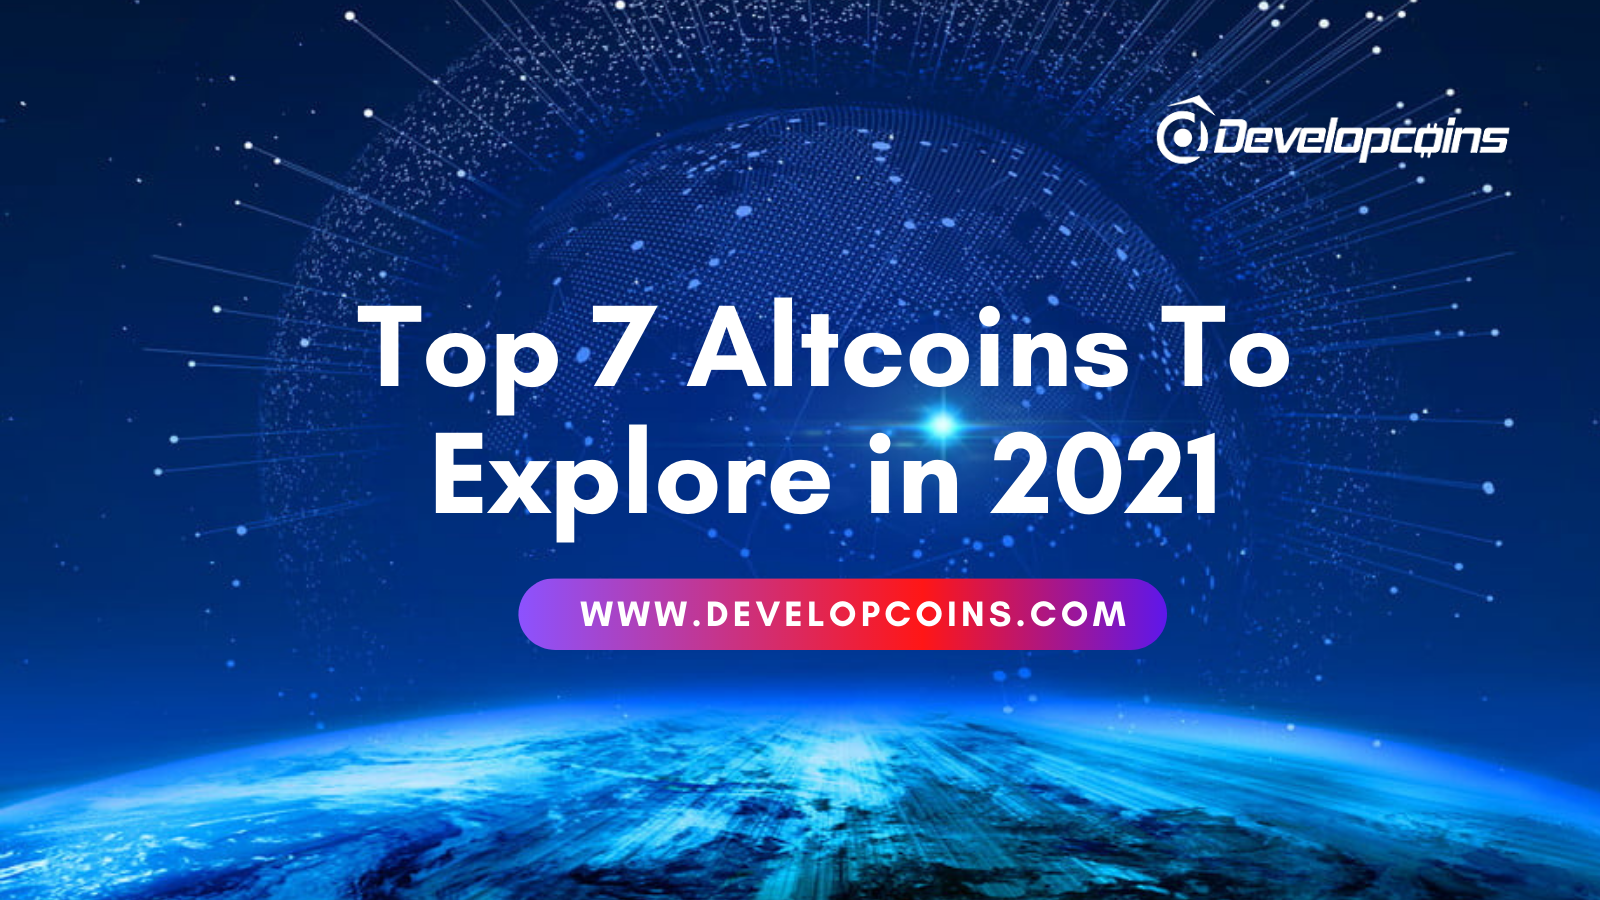 Top 7 Altcoins To Explore in 2021